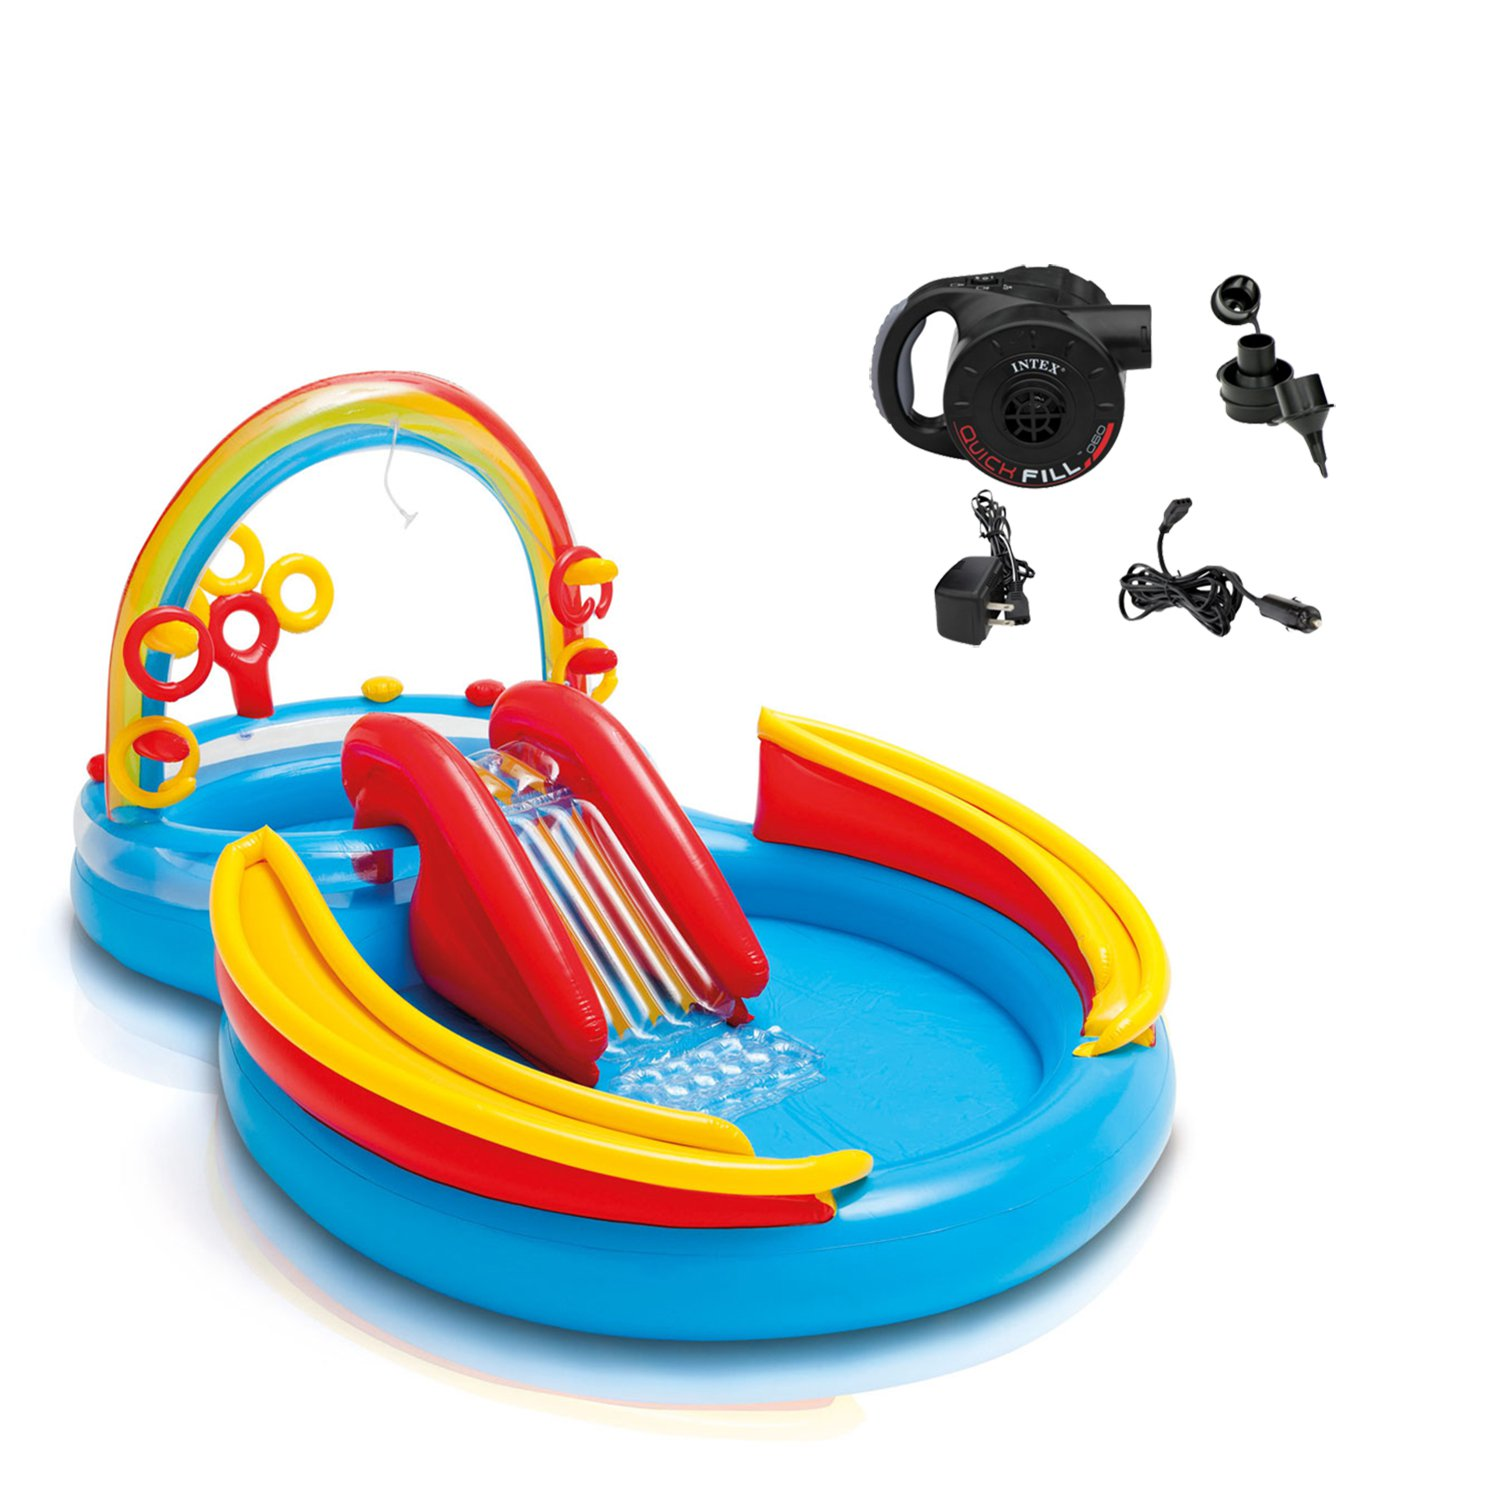 Intex Inflatable Pool Rainbow Ring Play Center w/ Slide & Quick Fill Air Pump